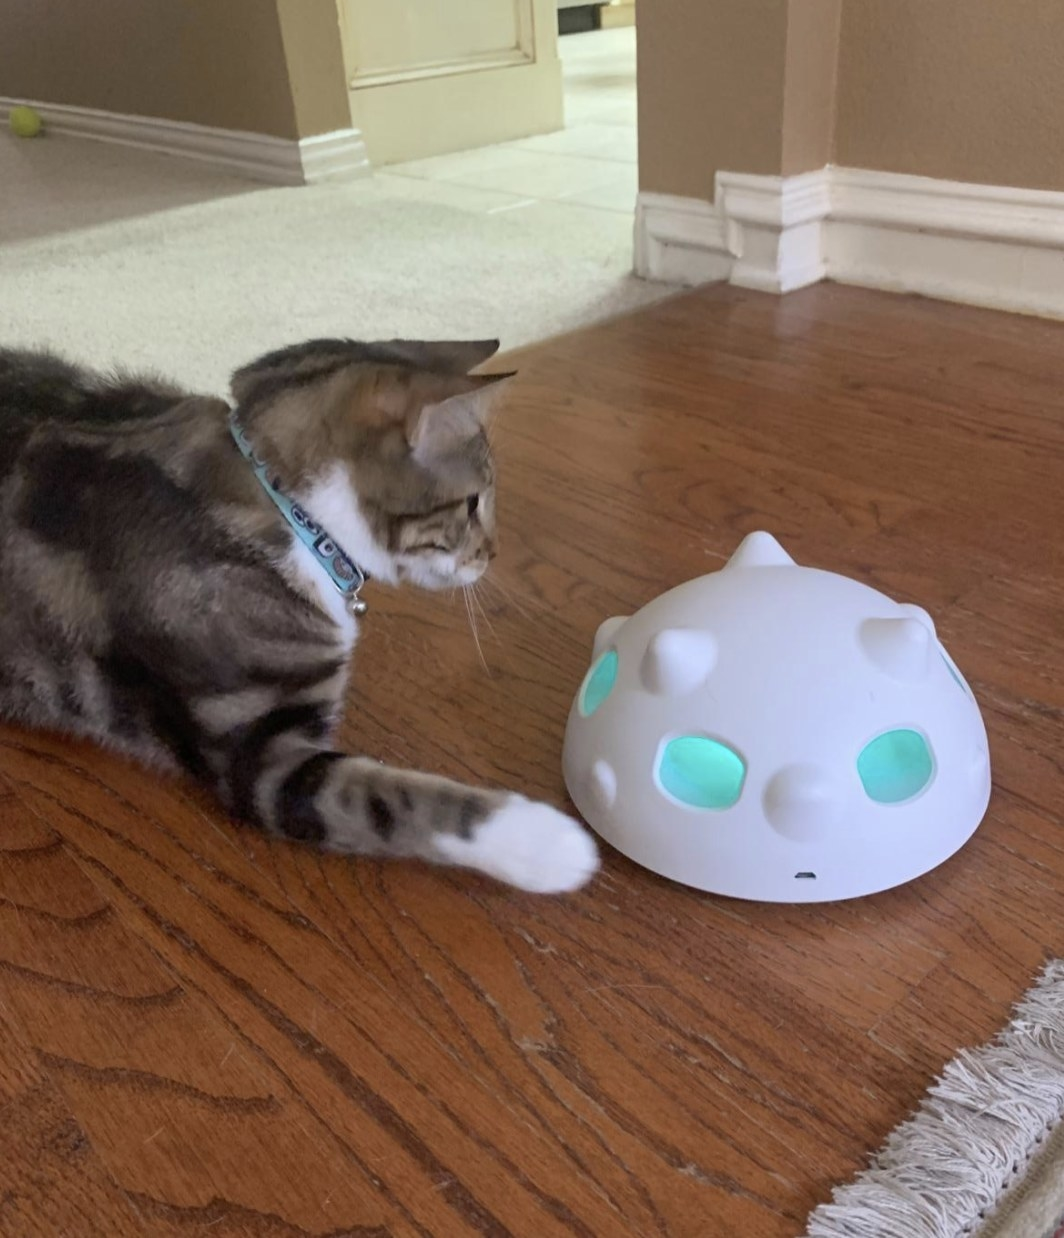 Cat pawing at the robotic pop-and-play cat toy